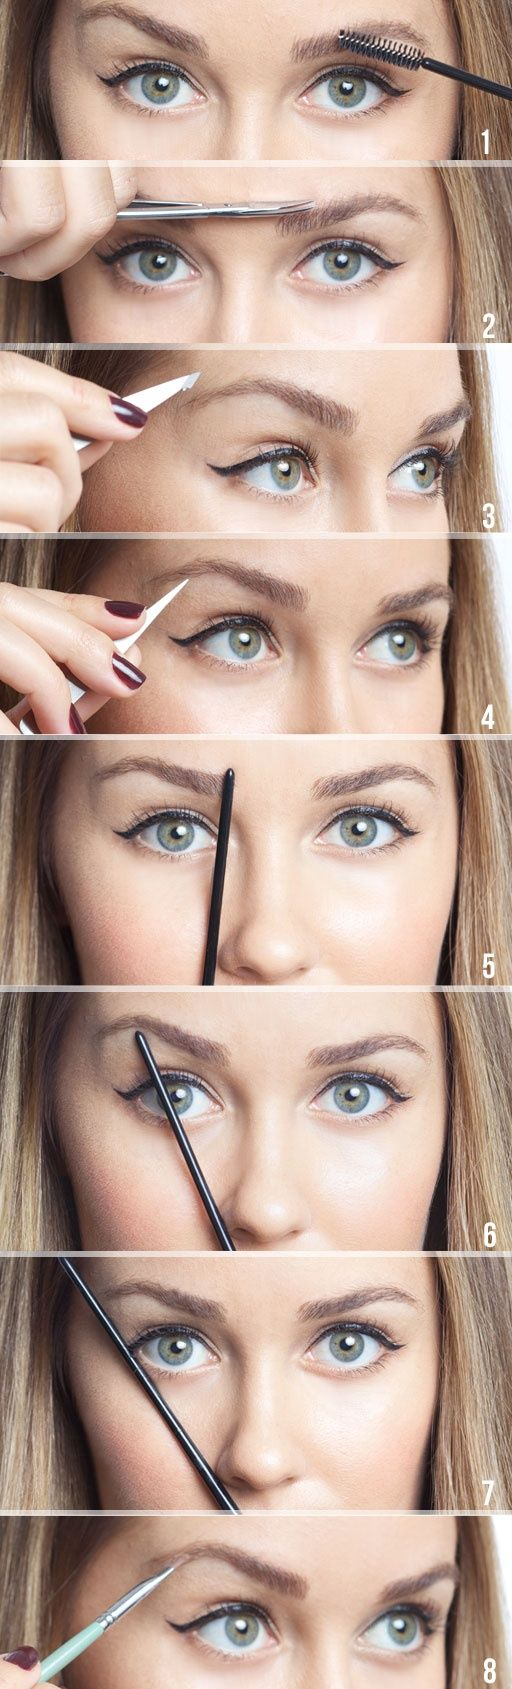 1. Brush hair UP 2. Trim hair OUTSIDE of brow line 3. and 4. Pluck hairs with tweezers 5. Hold pencil straight from edge of nose. This is where inside of brow should be. 6. Angle pencil to middle of...